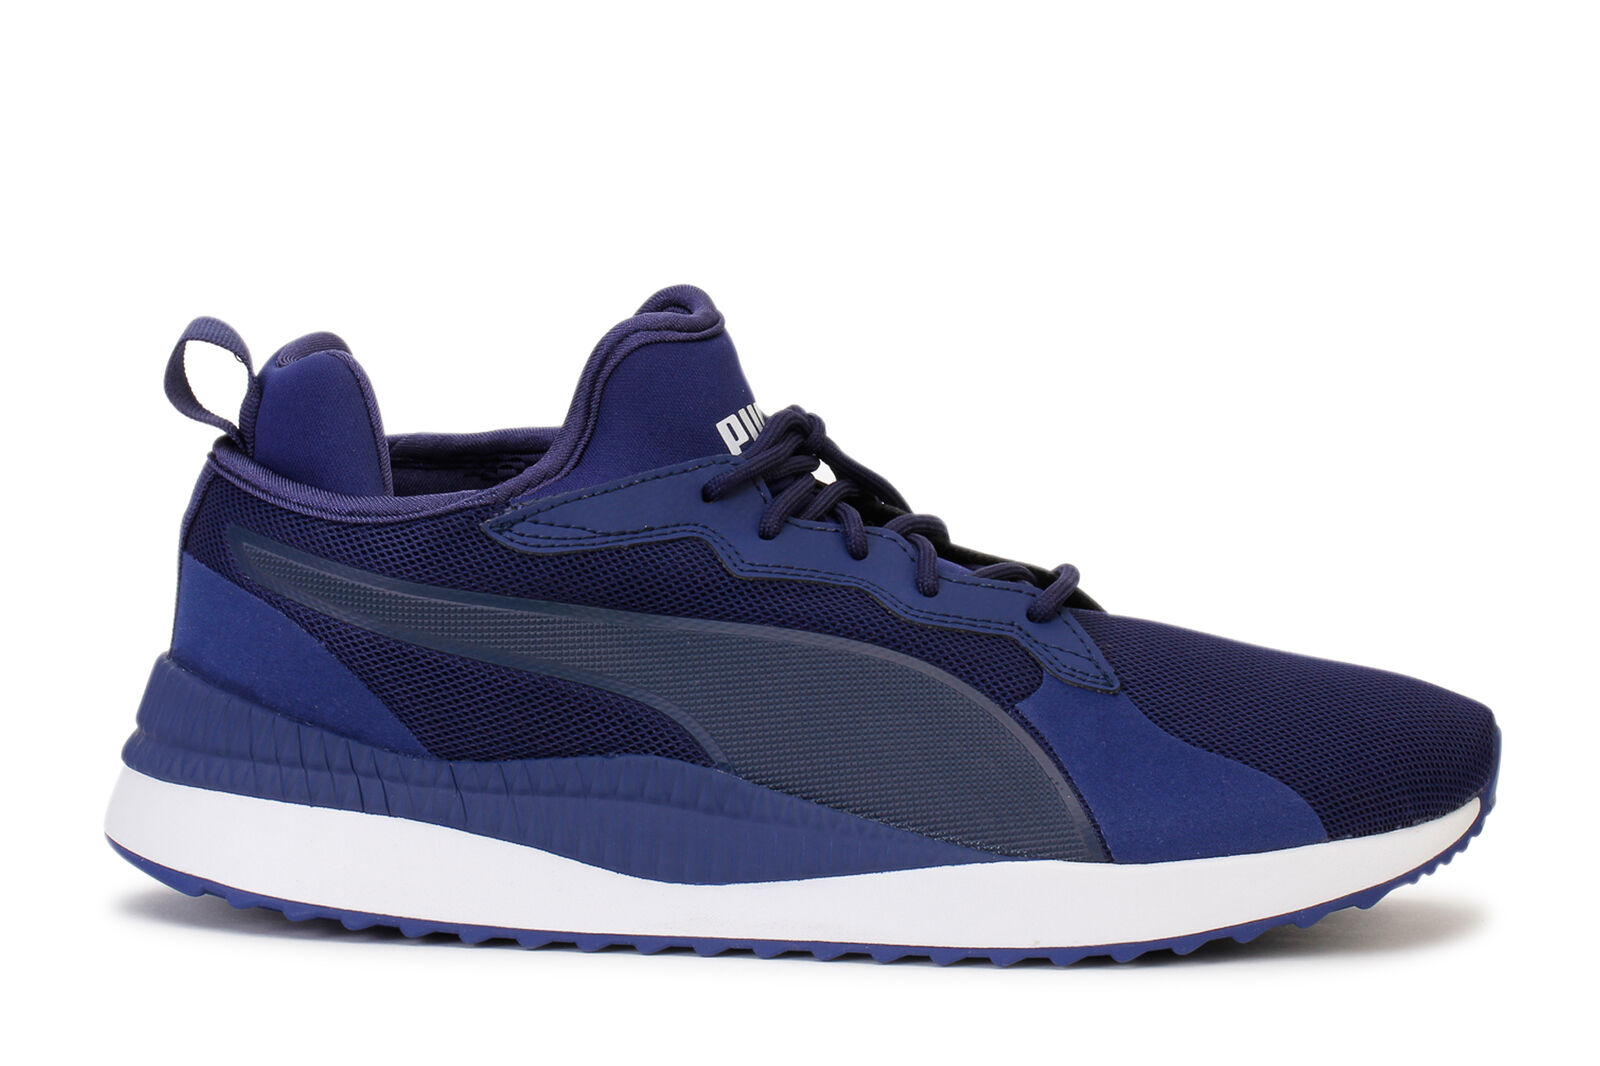 Puma Next Men's Sneakers Pacer Next Puma Blue Depth Peacoat 363703-02 8d3790